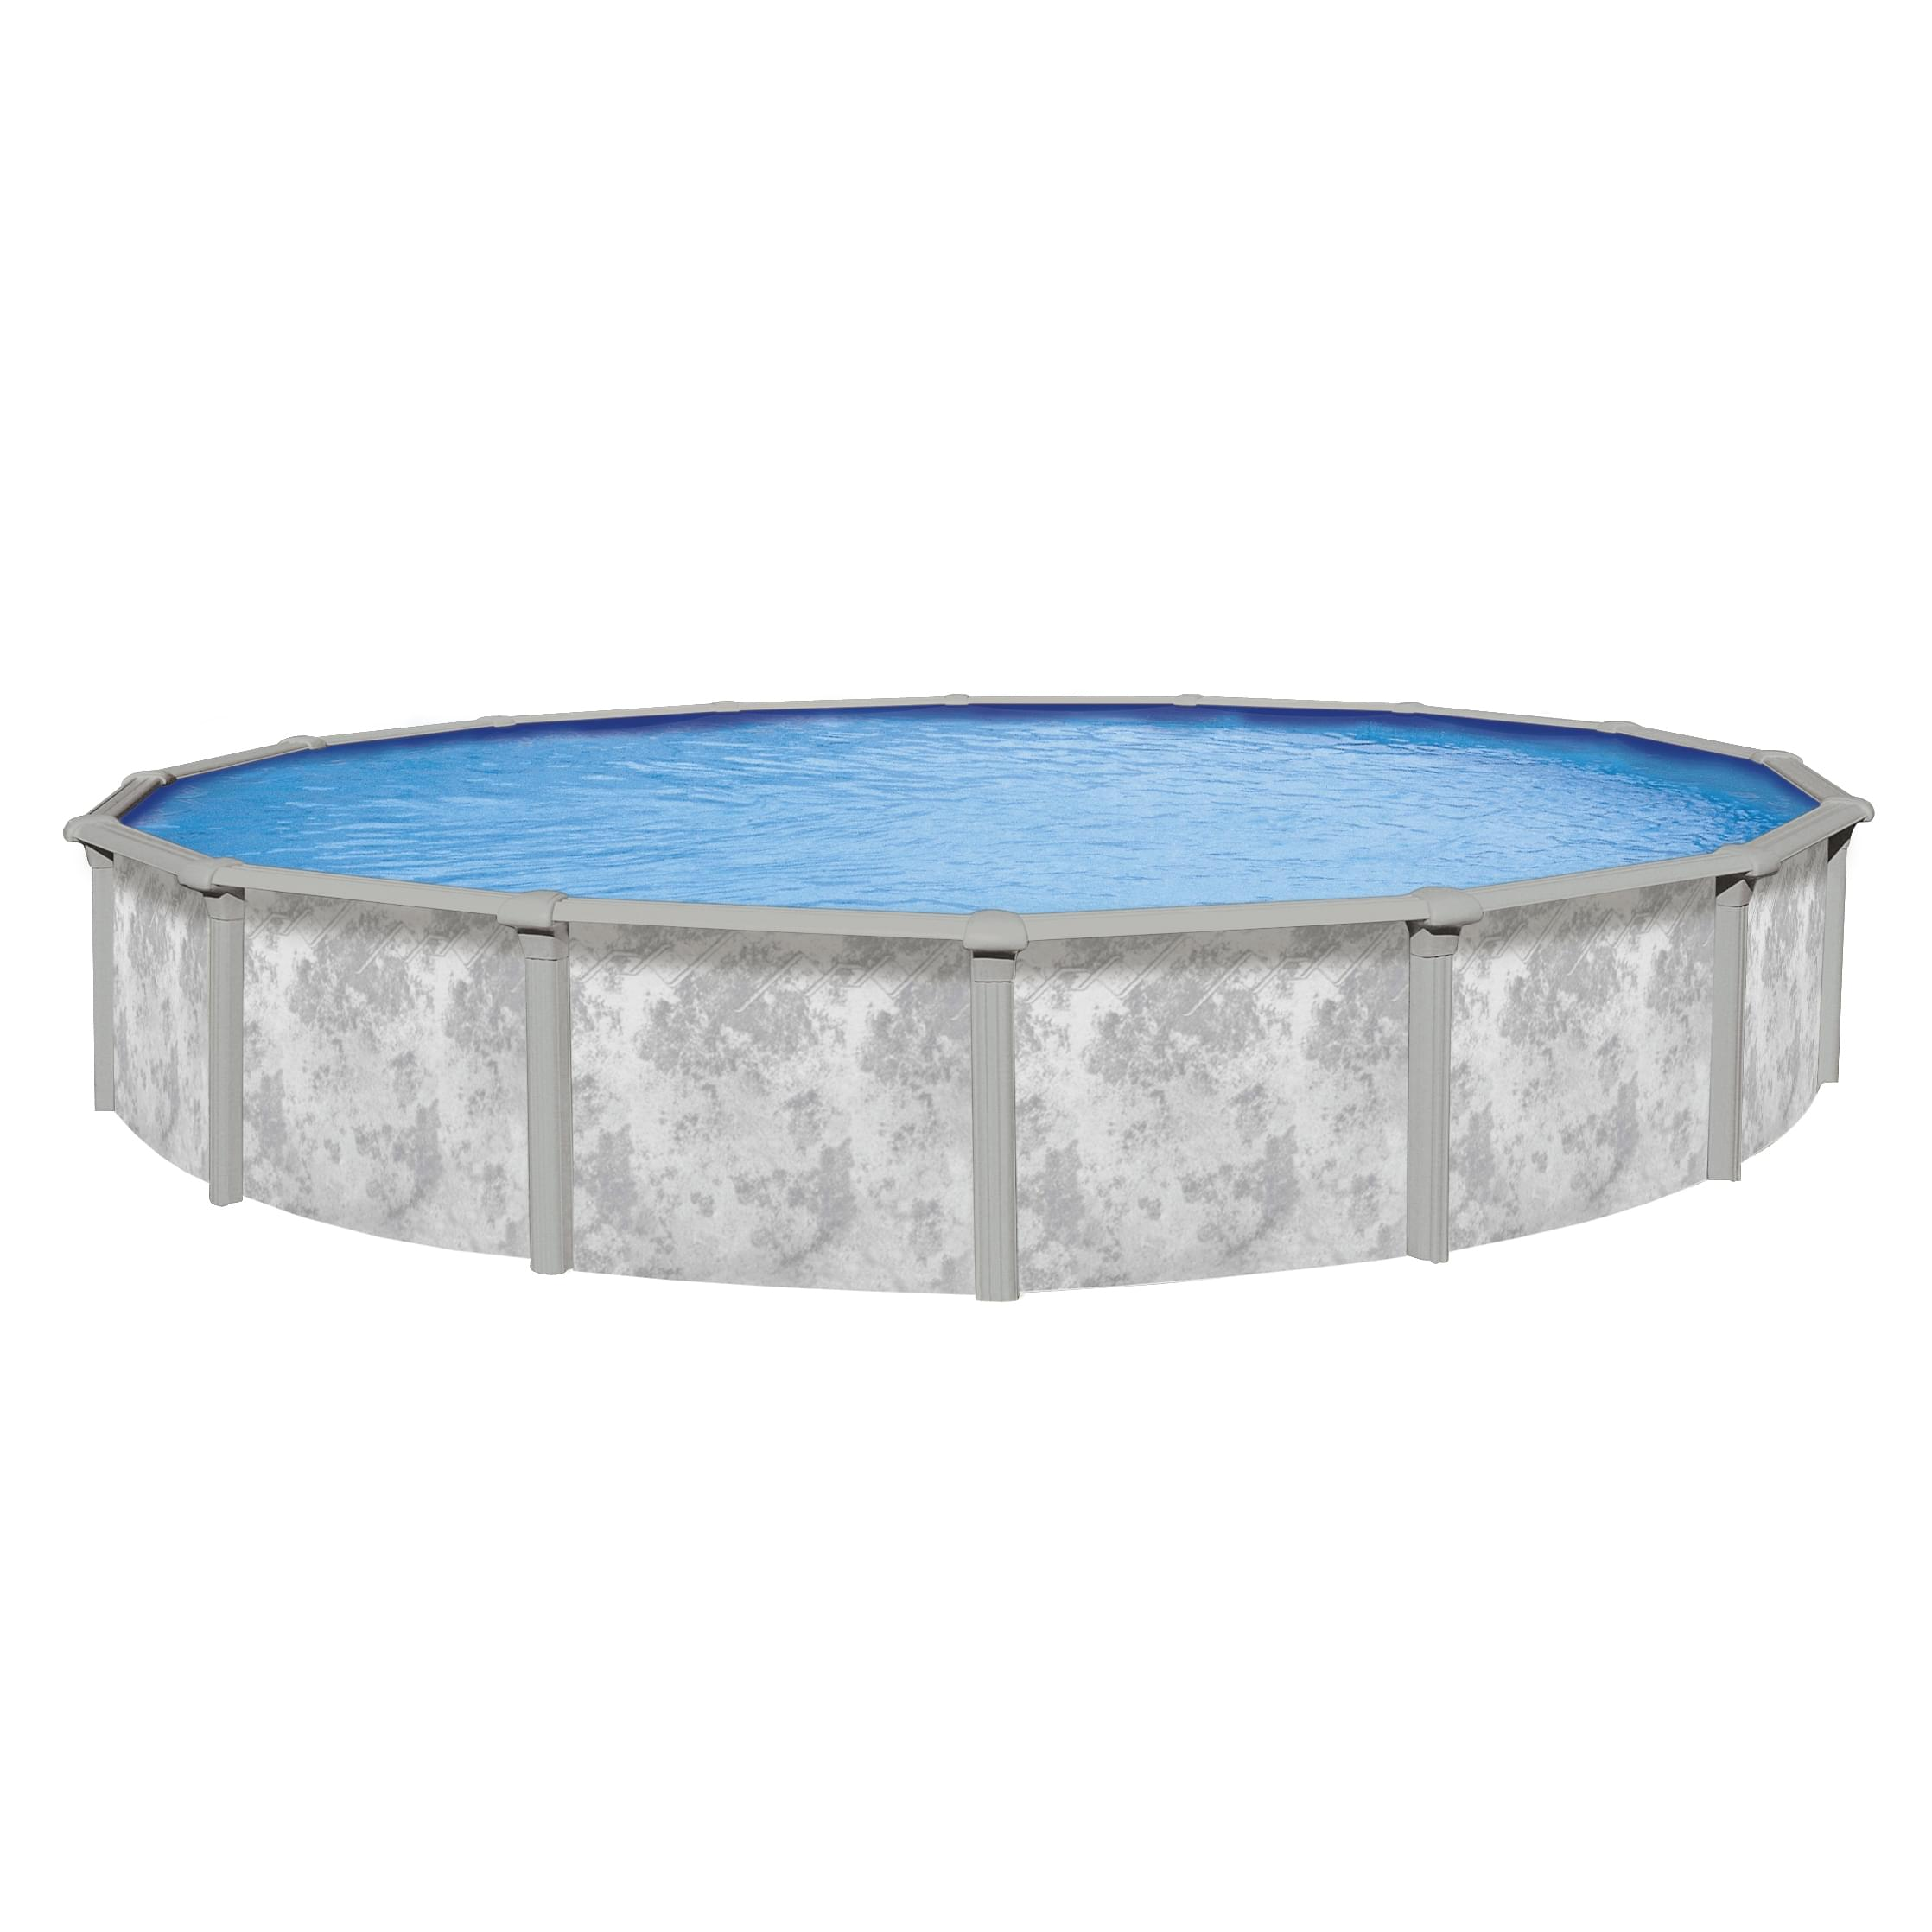 21 ft round j3000 above ground pool with 52 inch for Above ground pool equipment